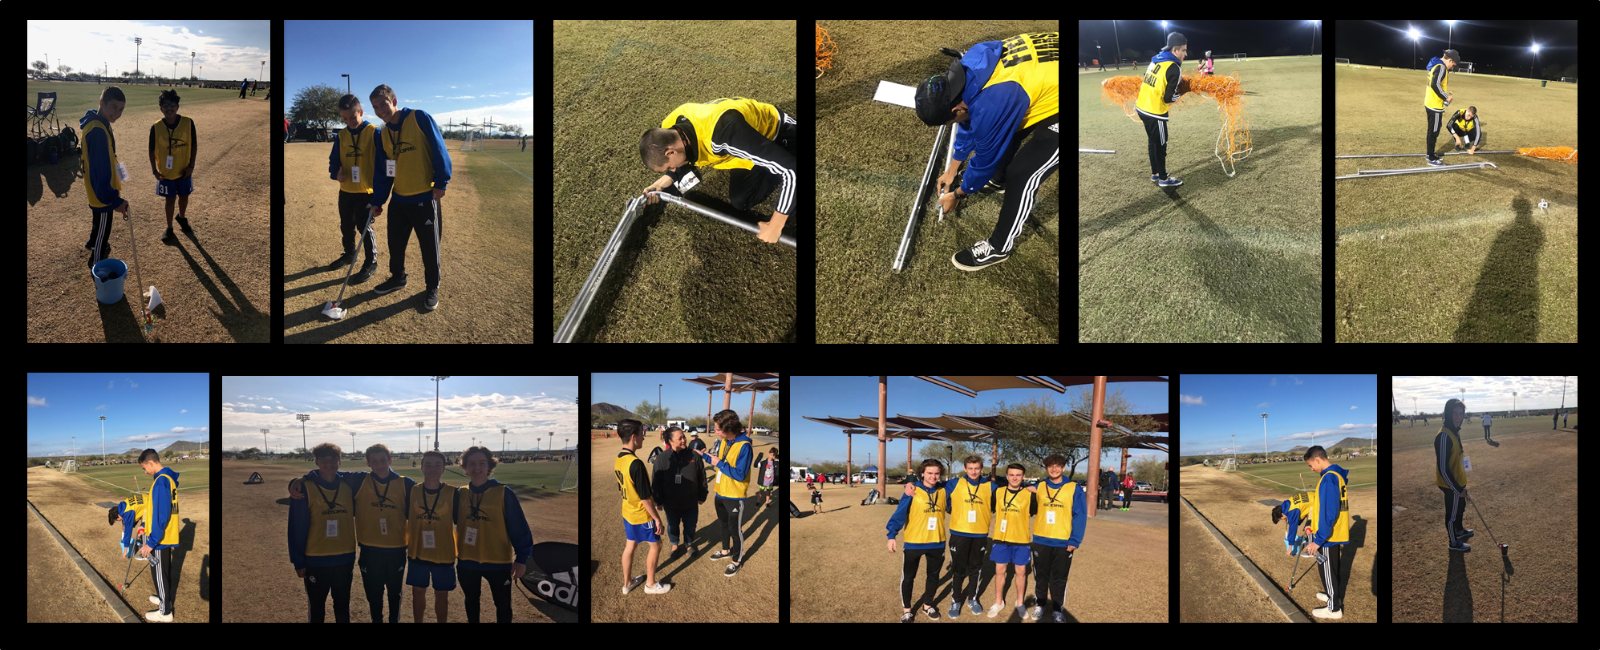 SDO Boy's Soccer Team spent the day serving their community by volunteering at the STARS tournament!